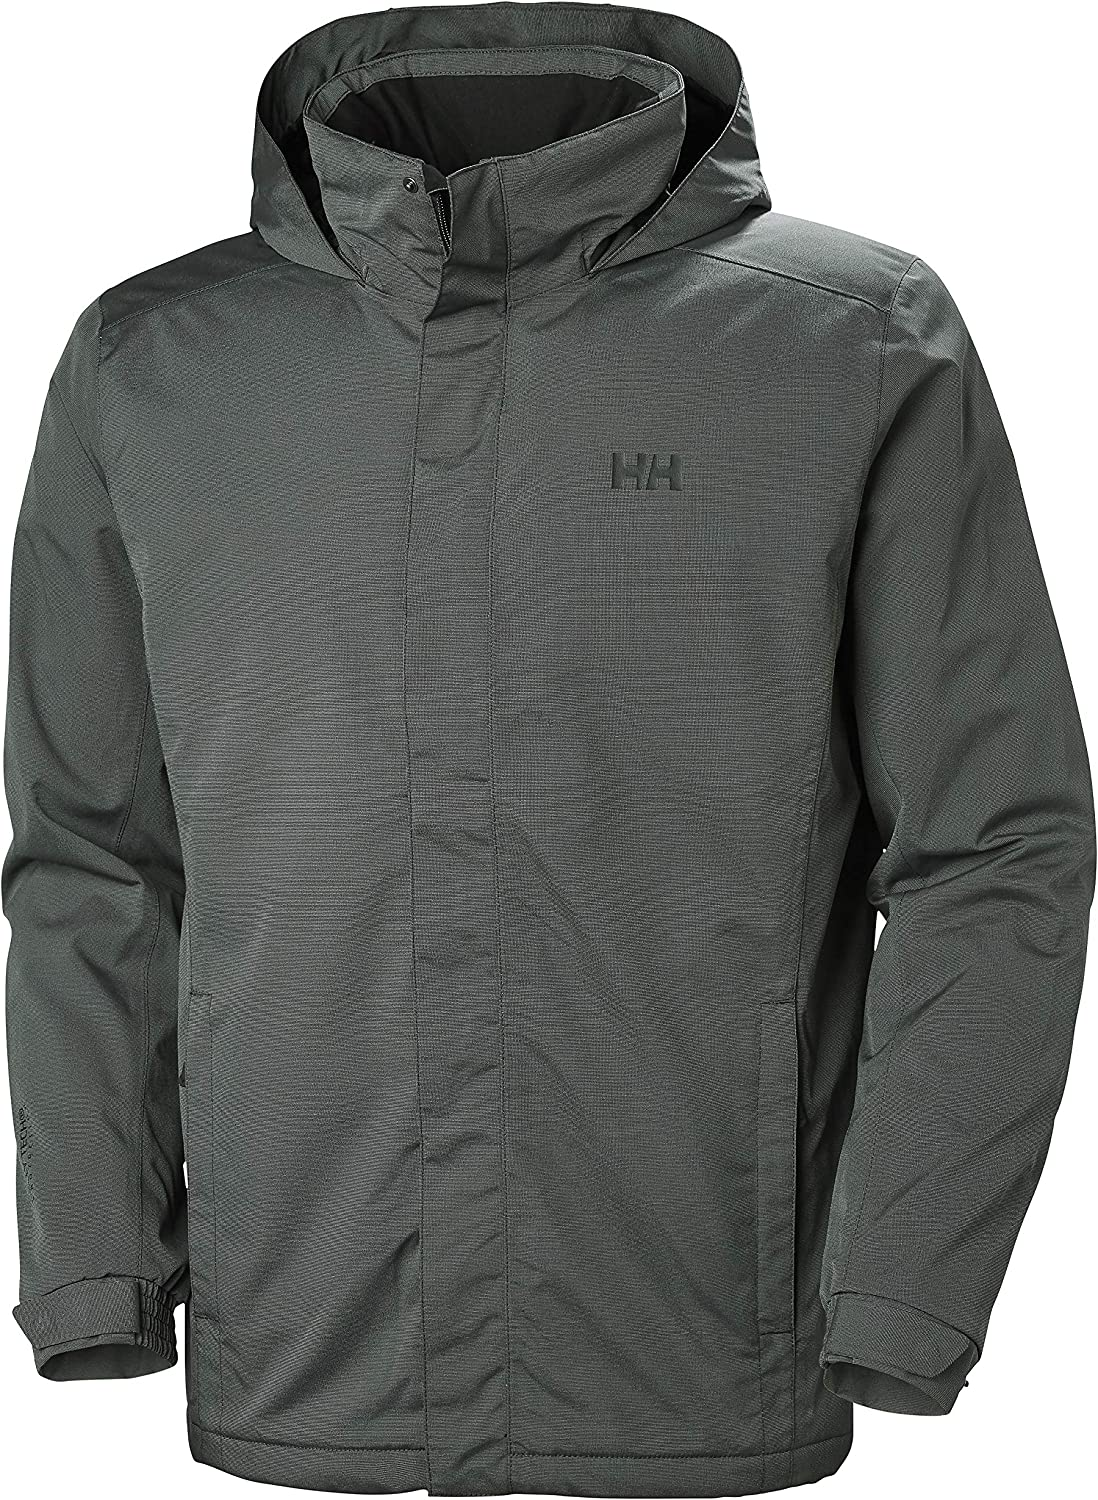 Helly Hansen Mens Waterproof Dubliner Insulated Jacket with Packable Hood for Cold Weather